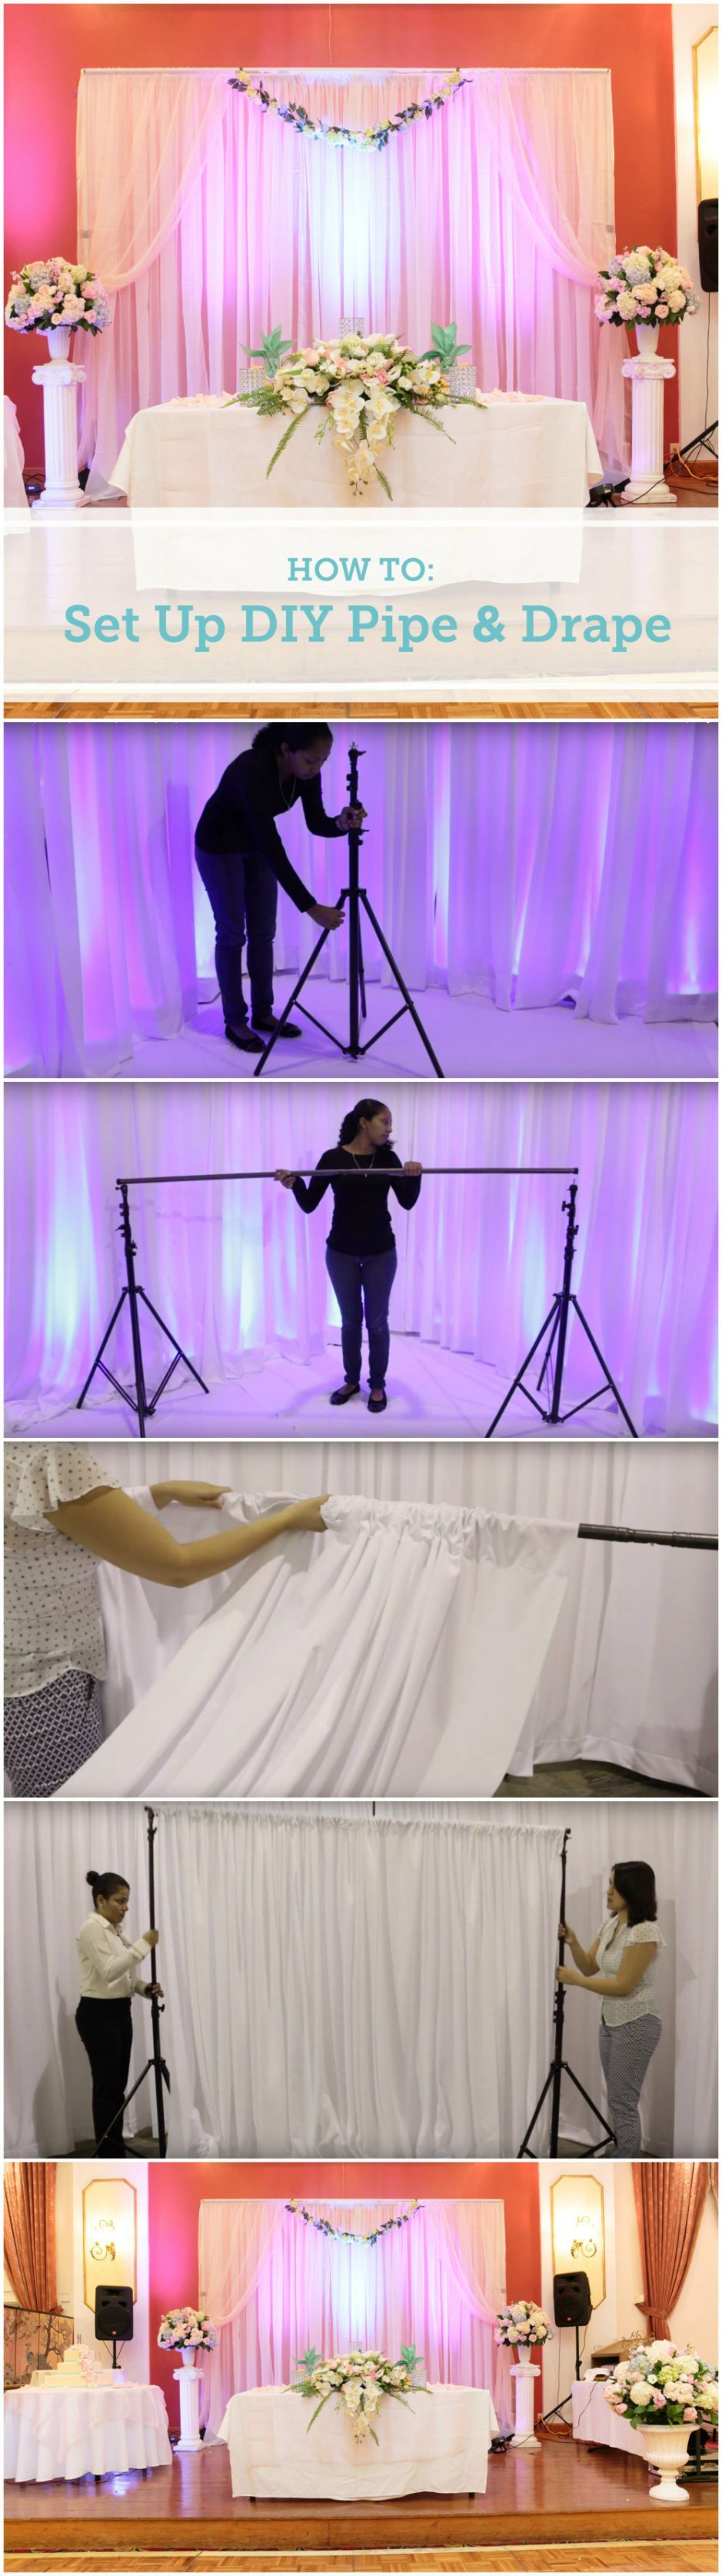 how to set up a diy wedding backdrop | diy projects | pinterest